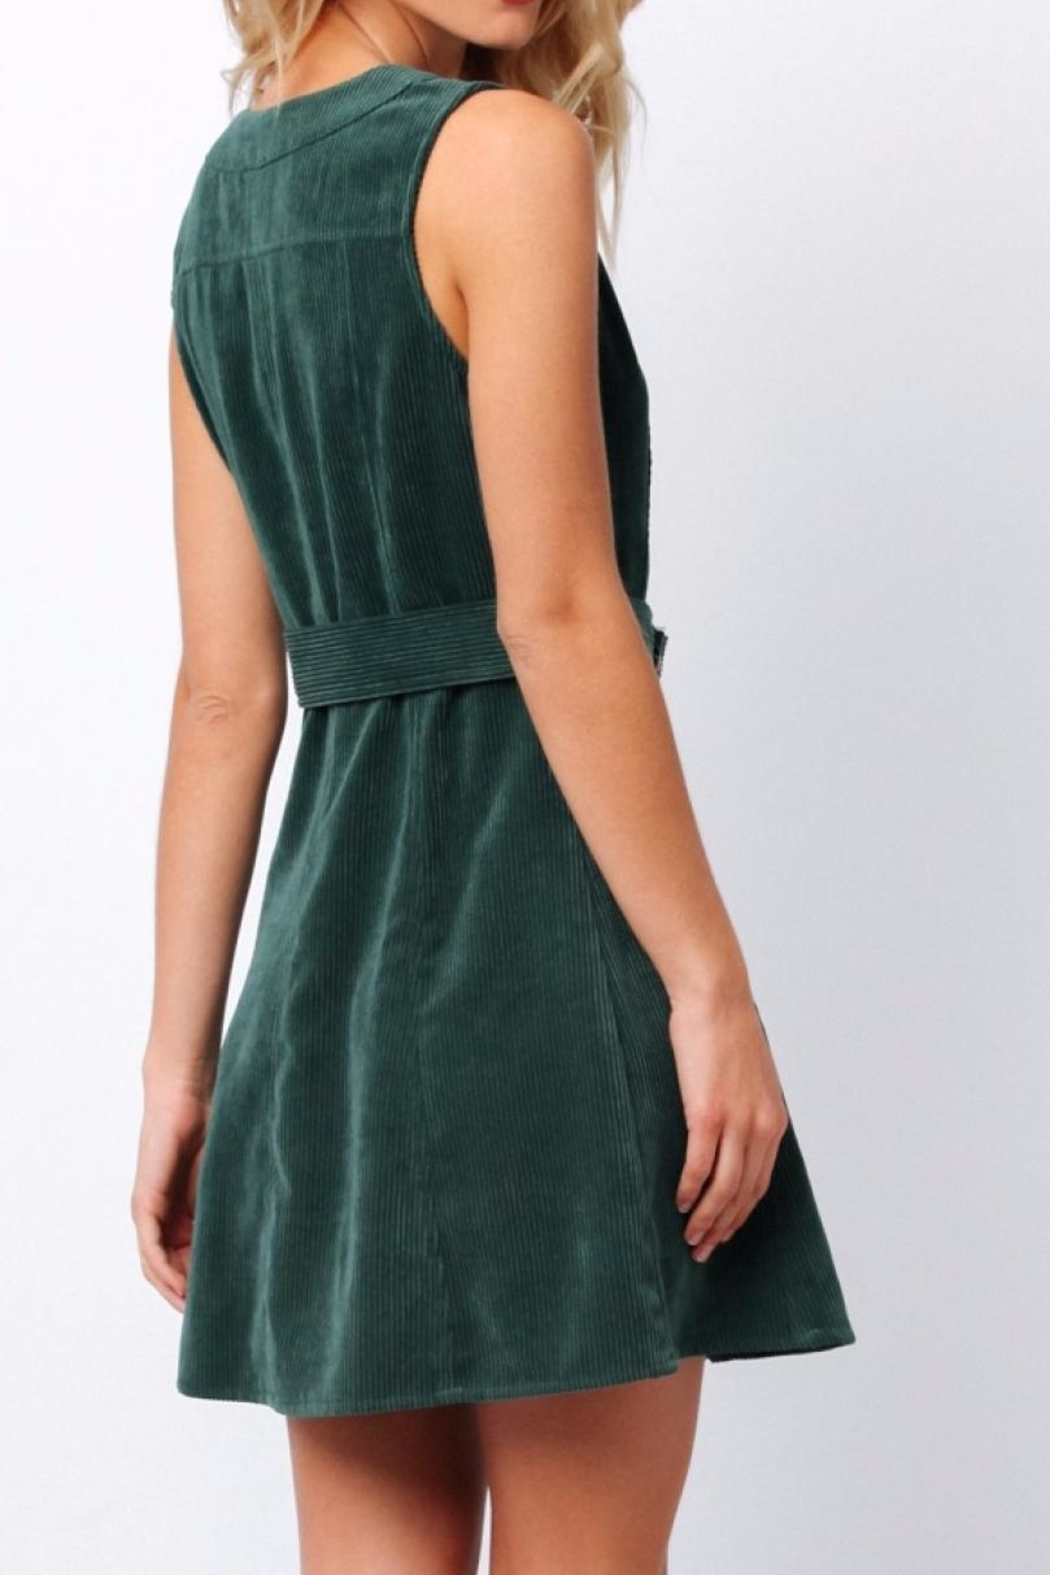 Paper Crane Green Corduroy Dress - Side Cropped Image